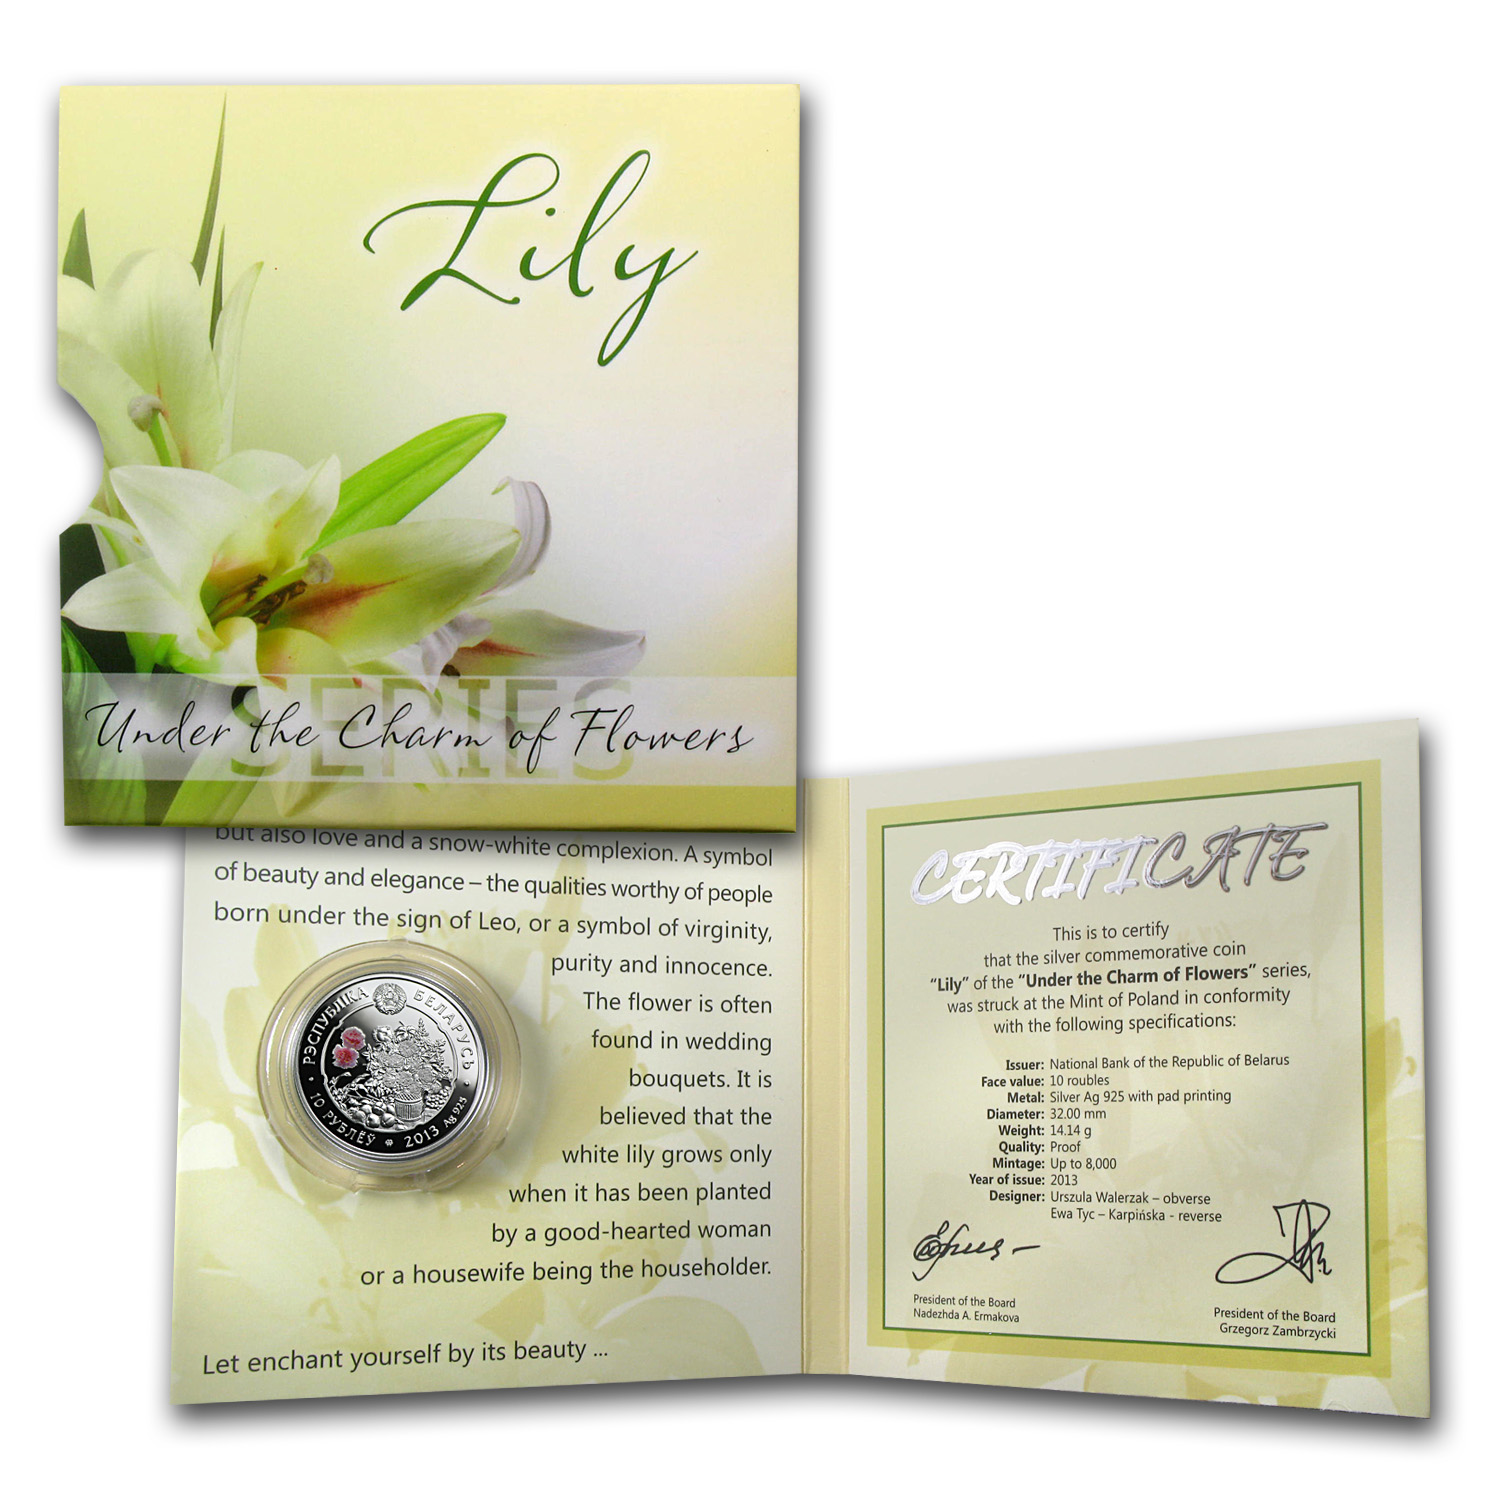 Belarus 2013 Silver Proof Under the Charm of Flowers - Lily